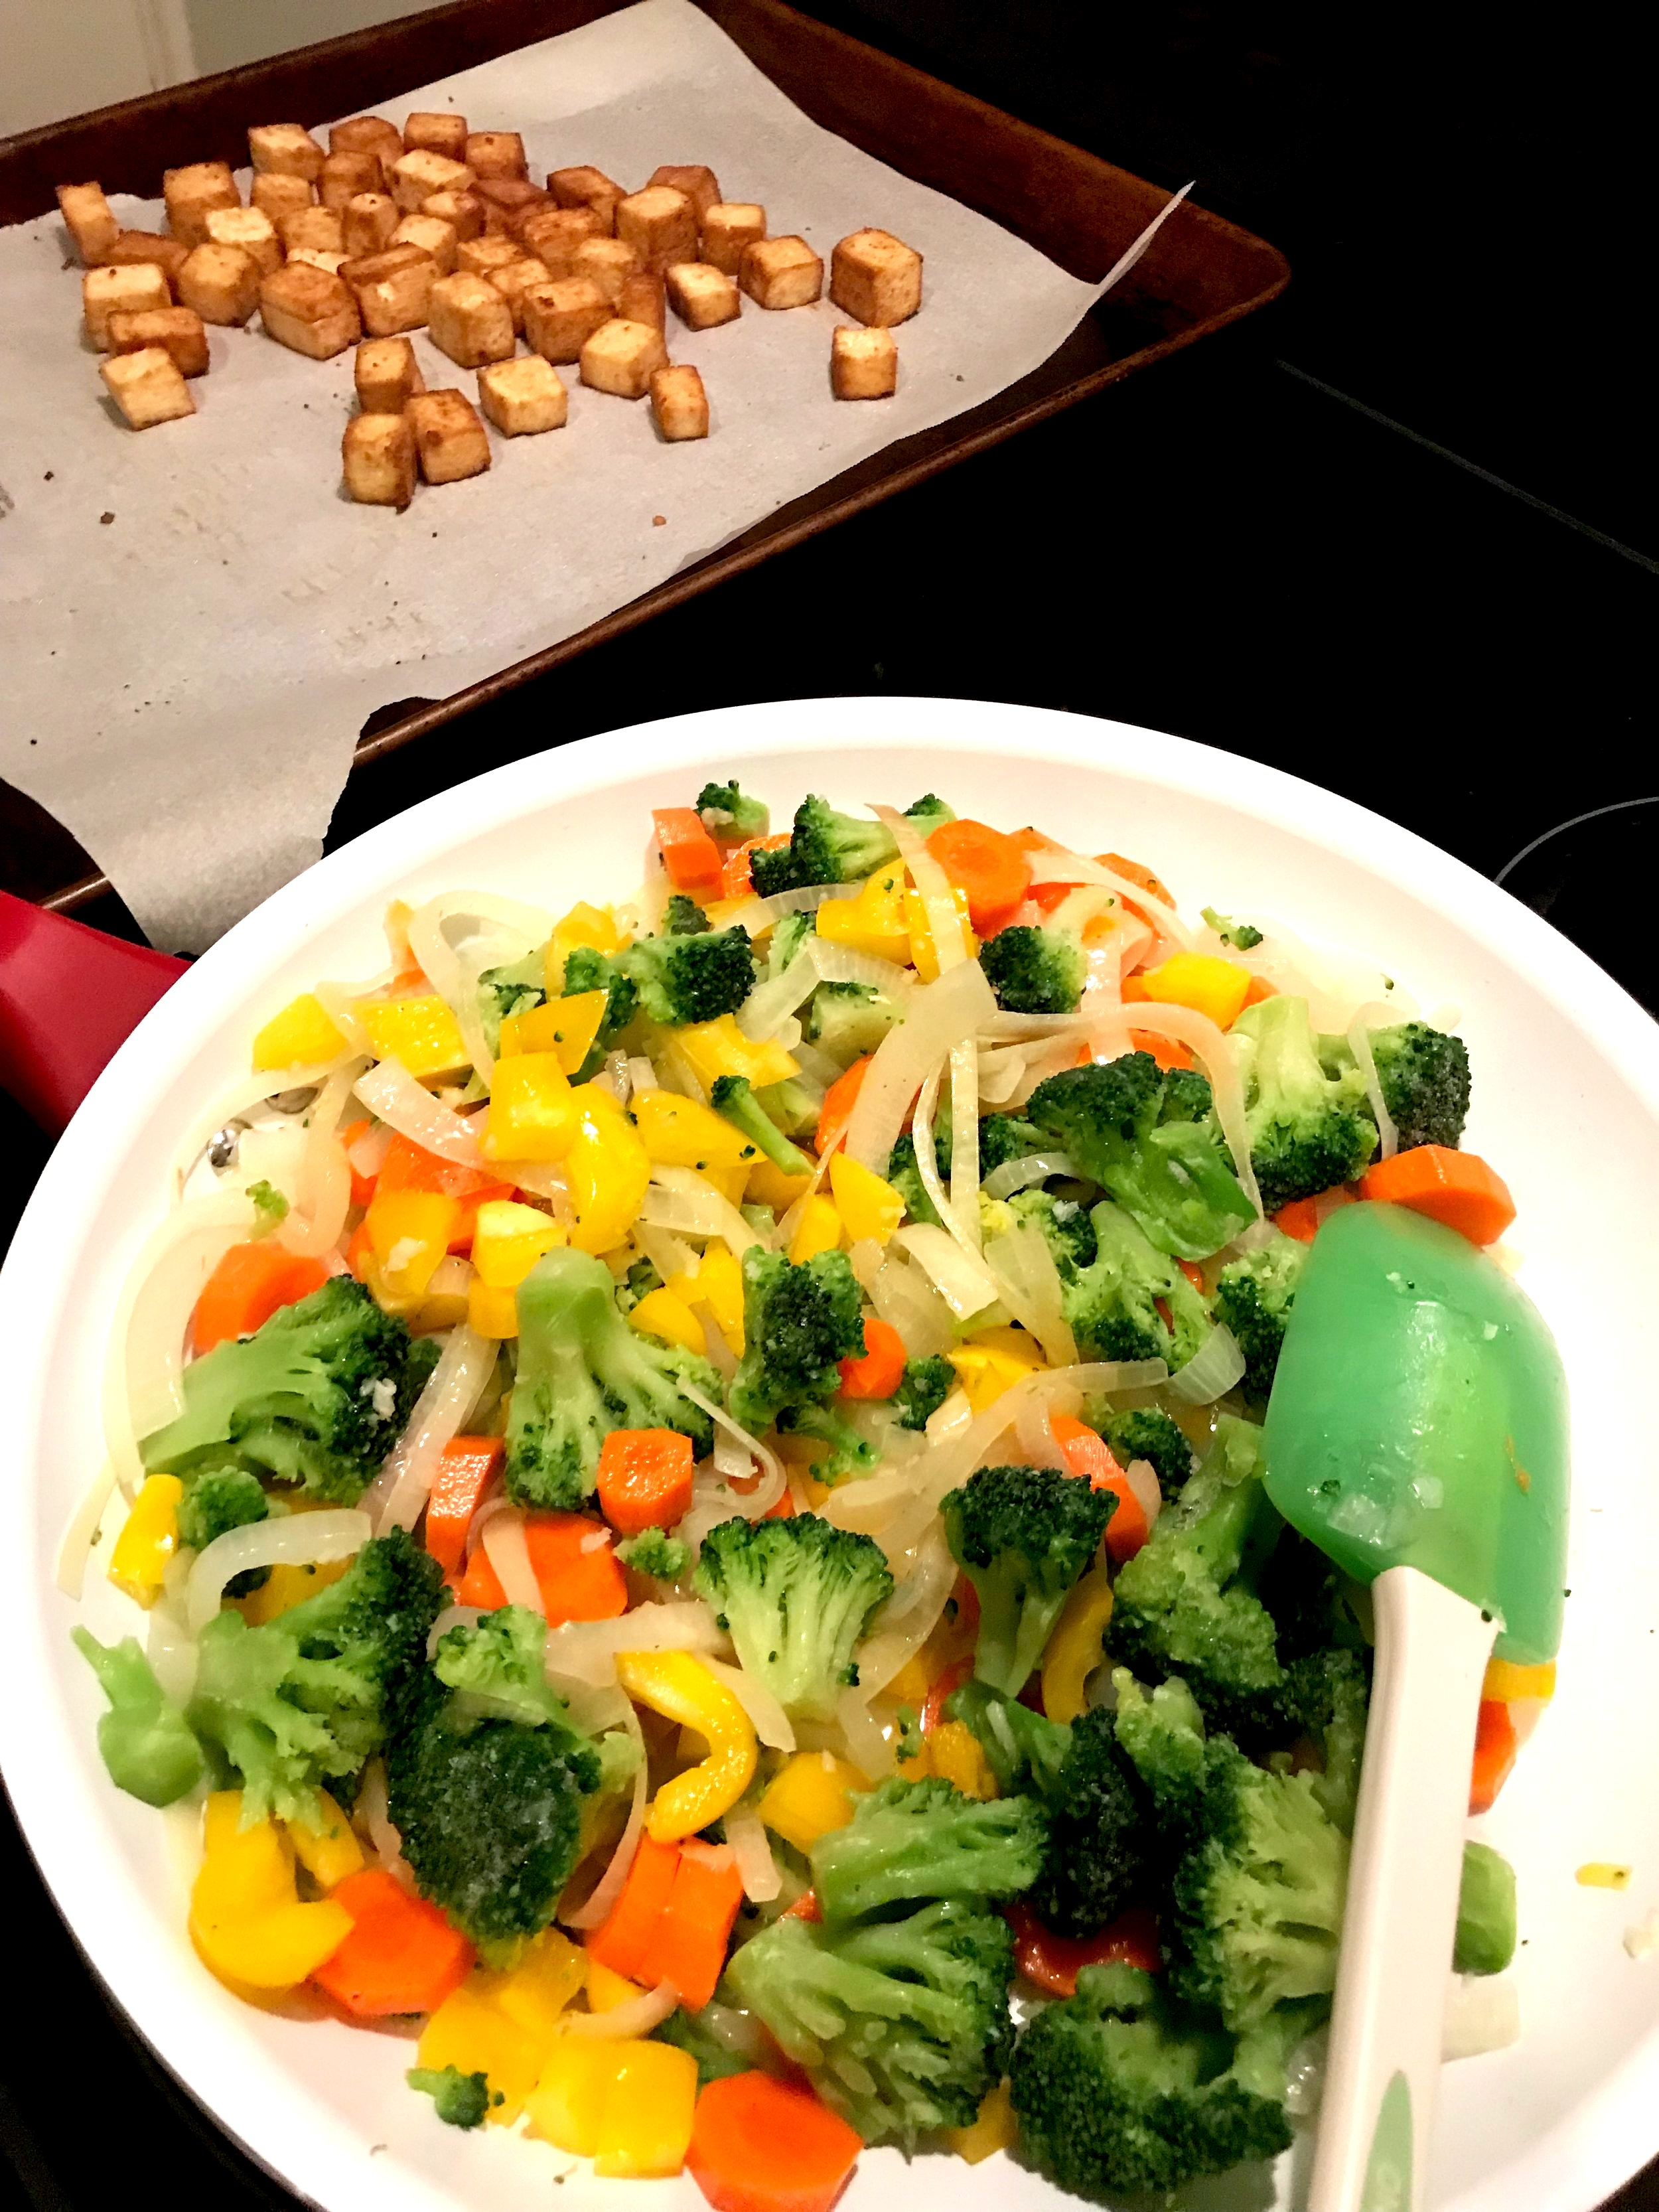 Veggie Stir Fry with Baked Tofu. Just add the rice and Teriyaki sauce and it's a full meal!